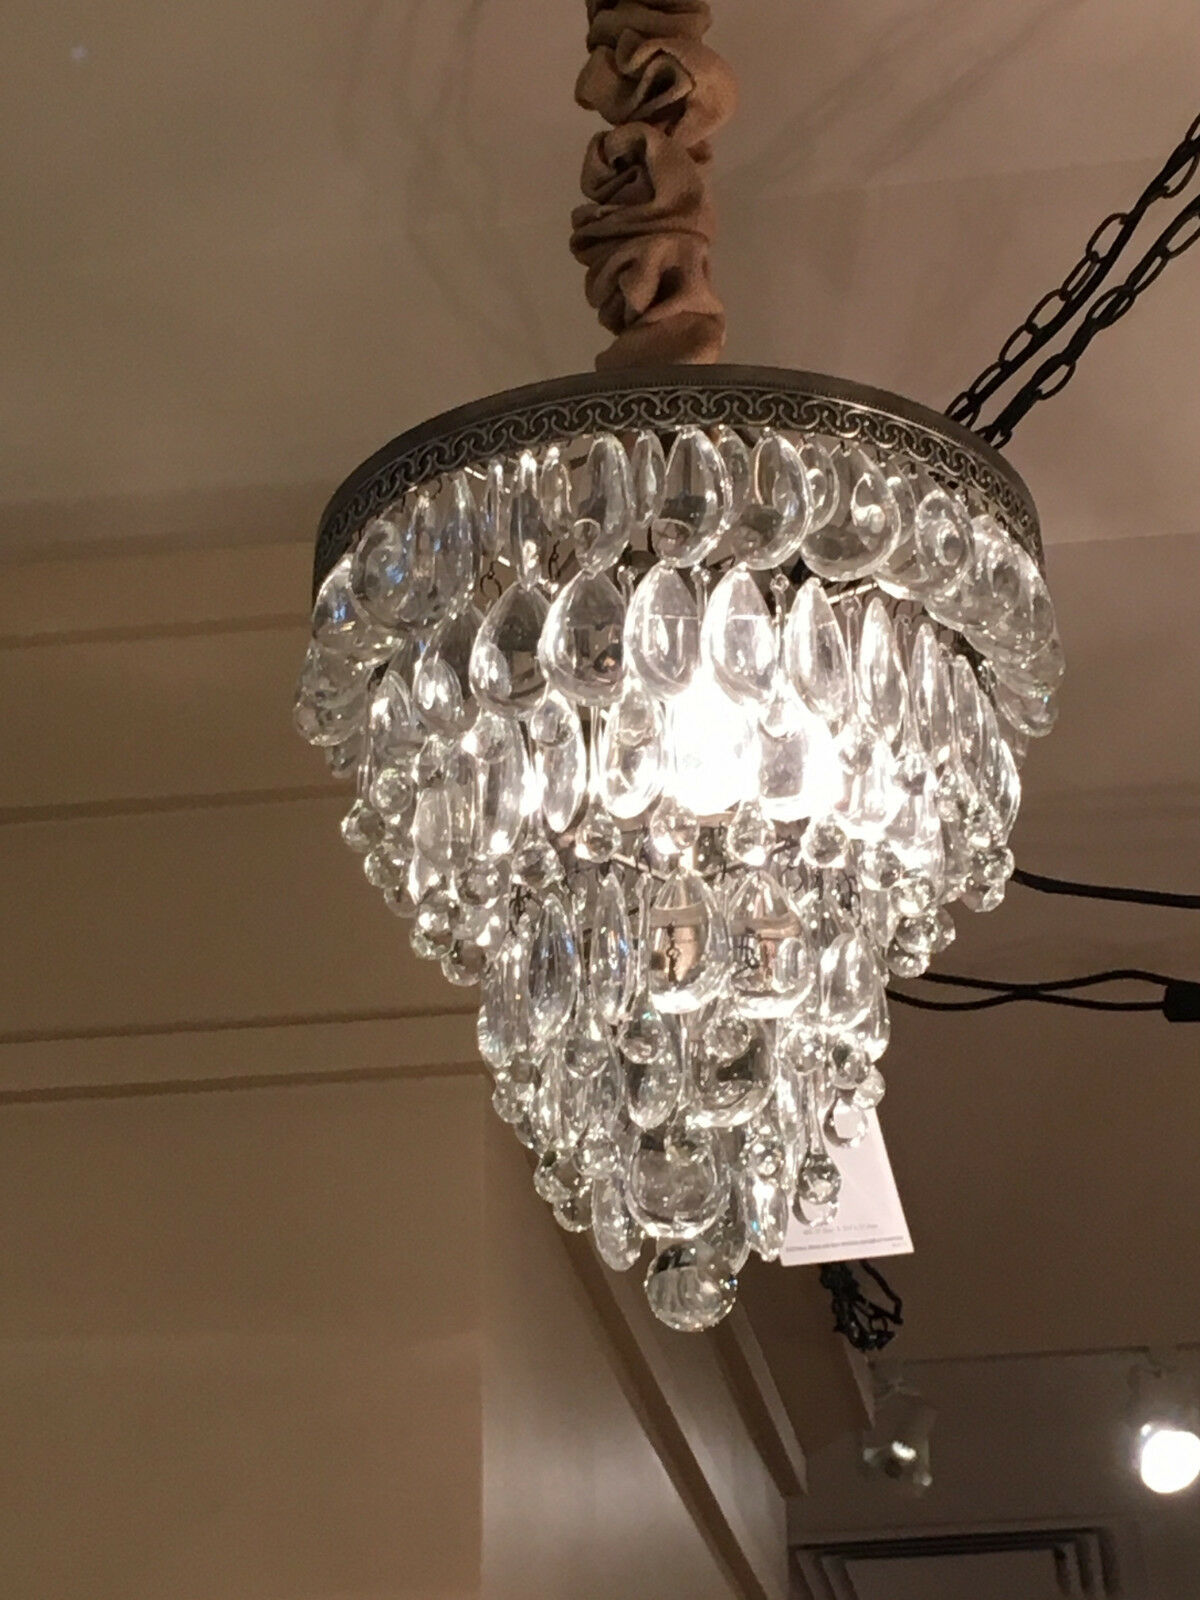 Pottery barn 2680098 clarissa glass drop chandelier antique silver resntentobalflowflowcomponenttechnicalissues arubaitofo Image collections